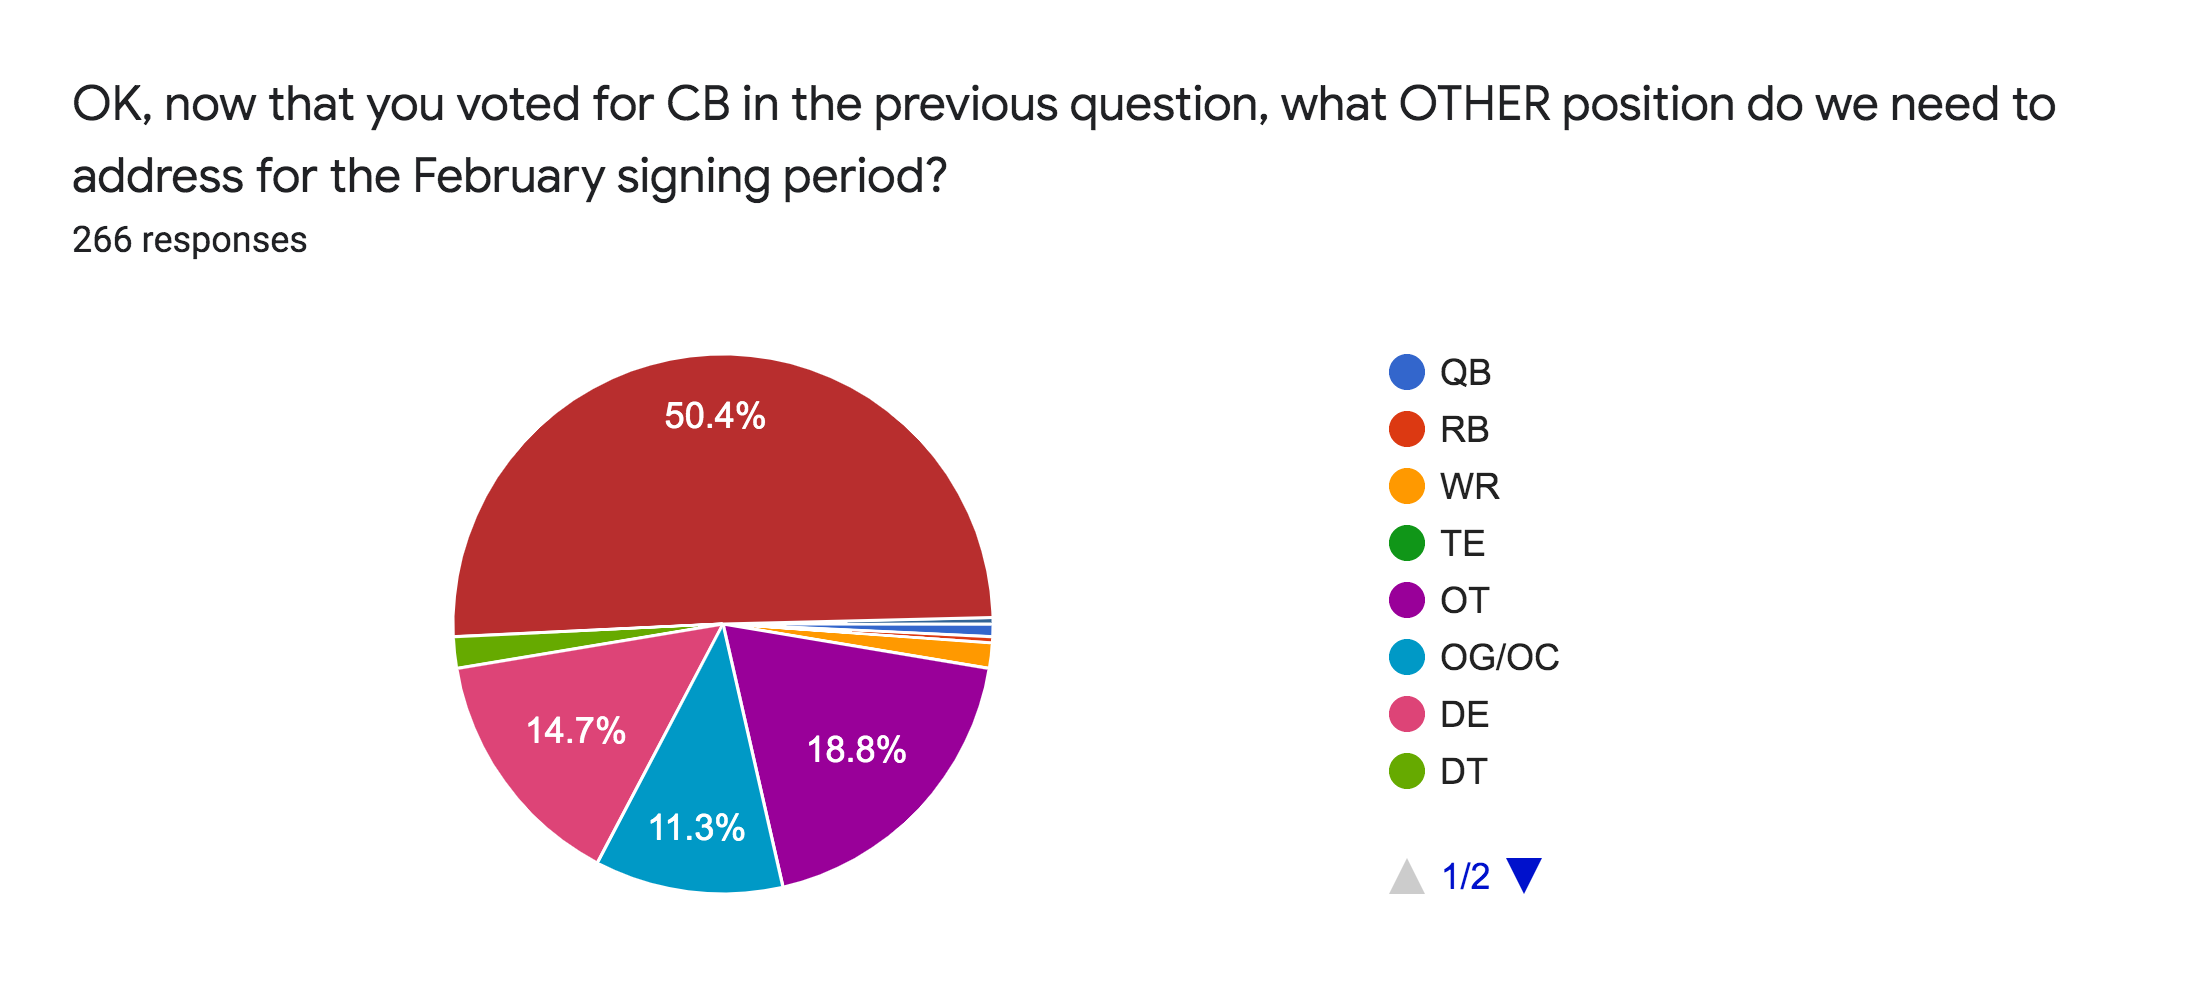 Forms response chart. Question title: OK, now that you voted for CB in the previous question, what OTHER position do we need to address for the February signing period?. Number of responses: 266 responses.